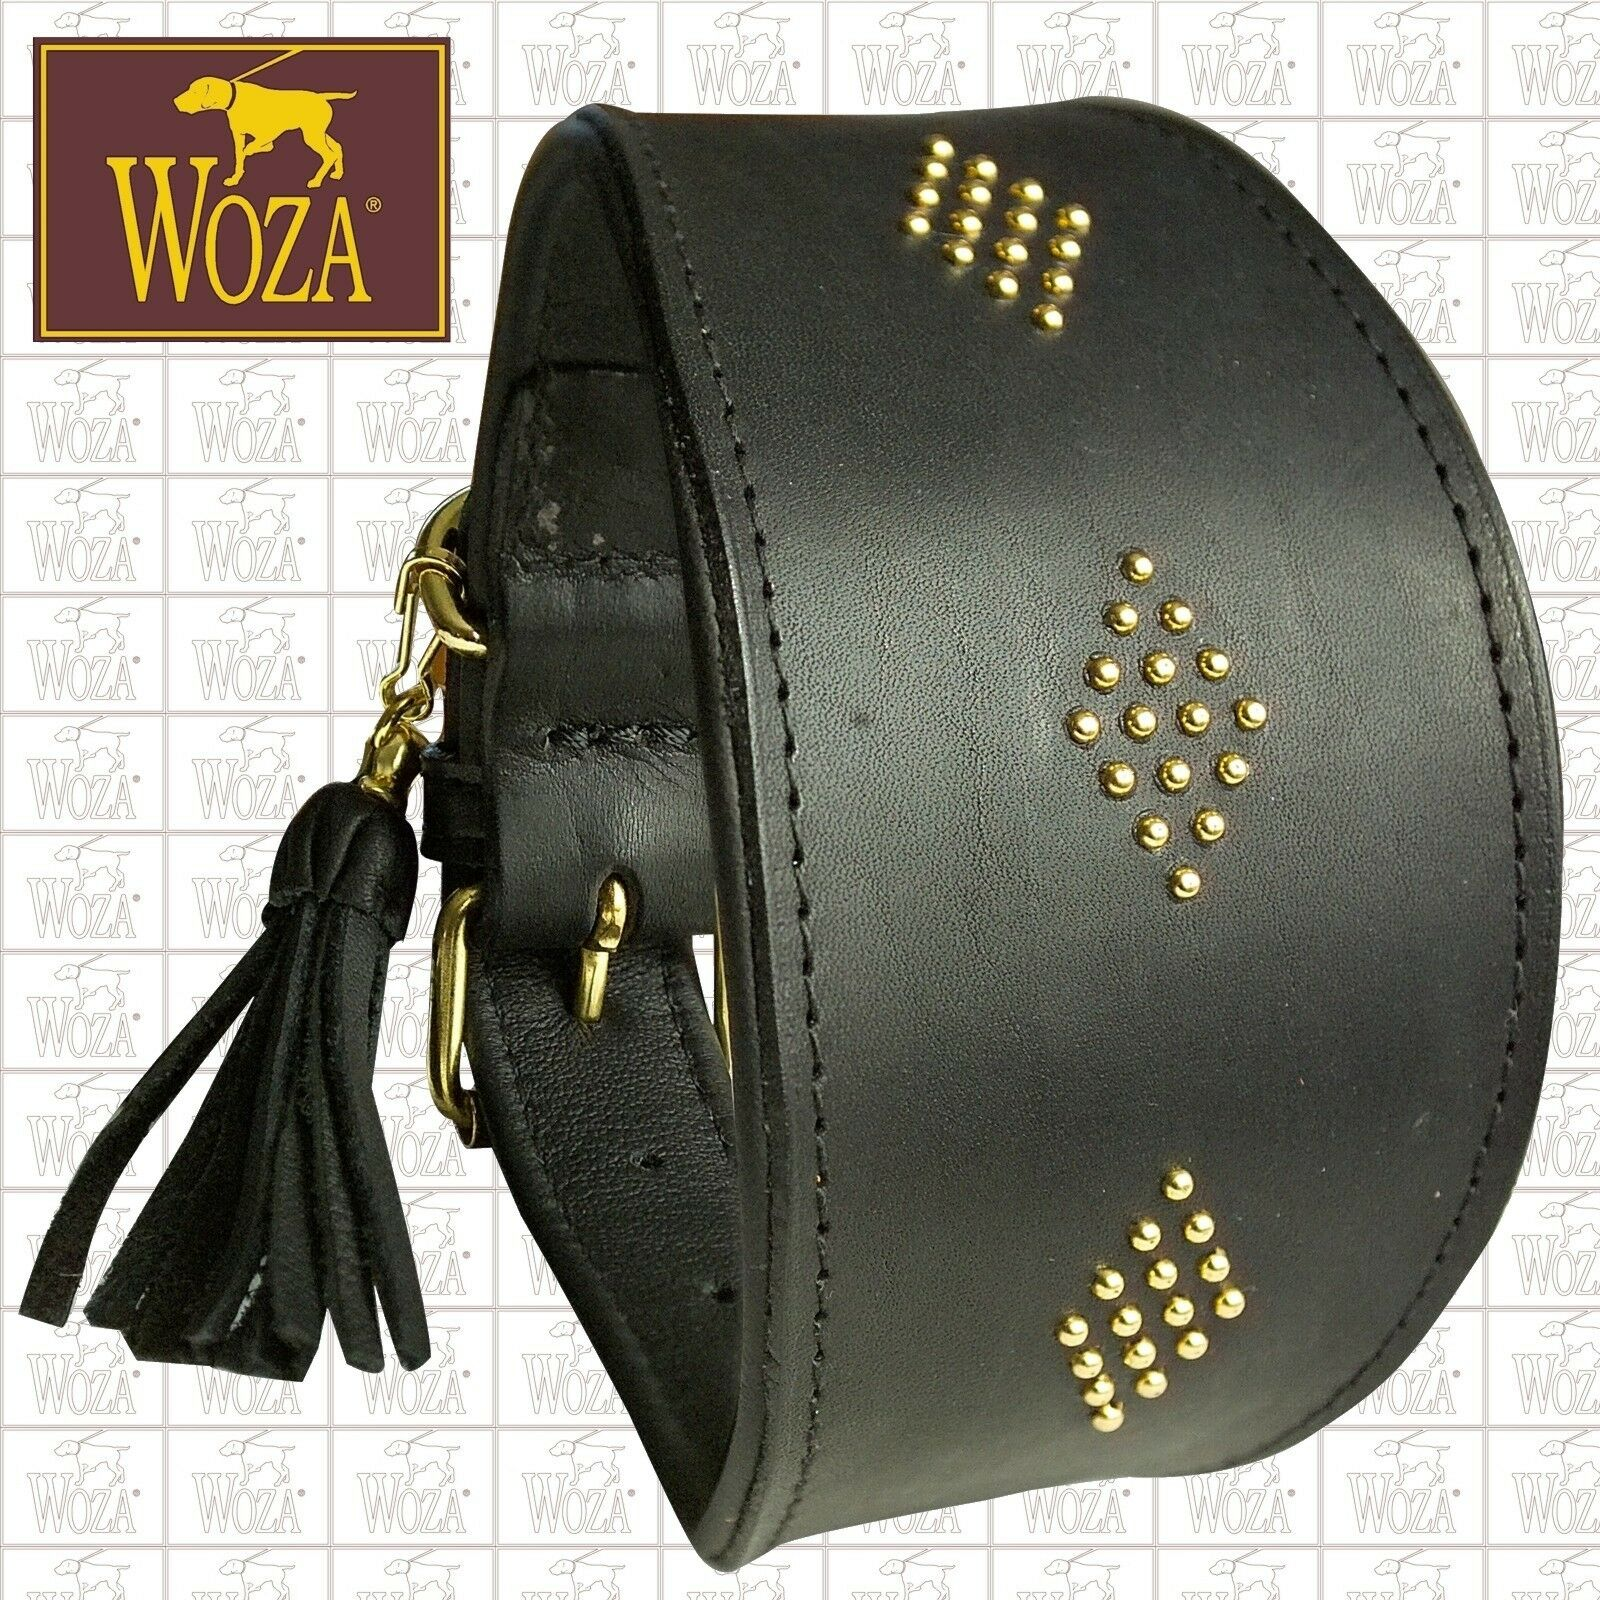 Premium WOZA Greyhound Collar Saddlery-sewn Full Leather Cow's Napa Padded S739